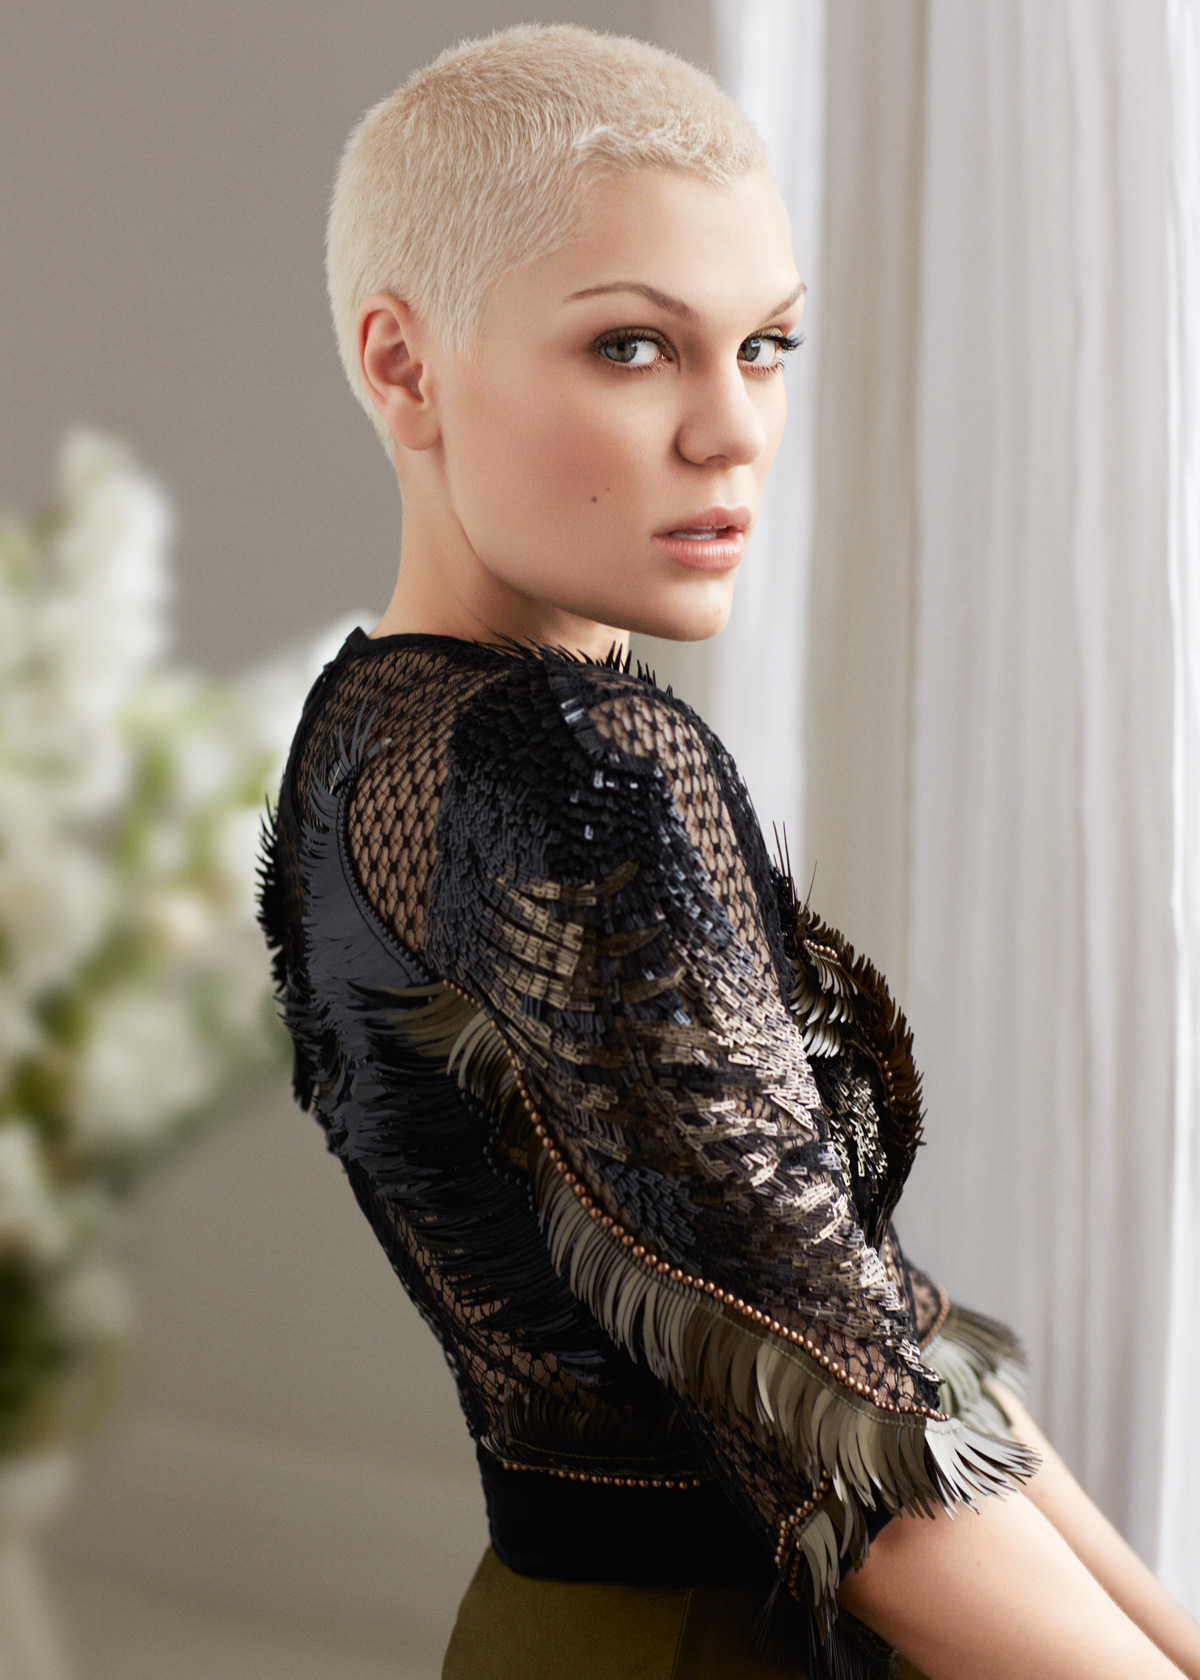 House Of Usher Jessie J by David Roemer 07